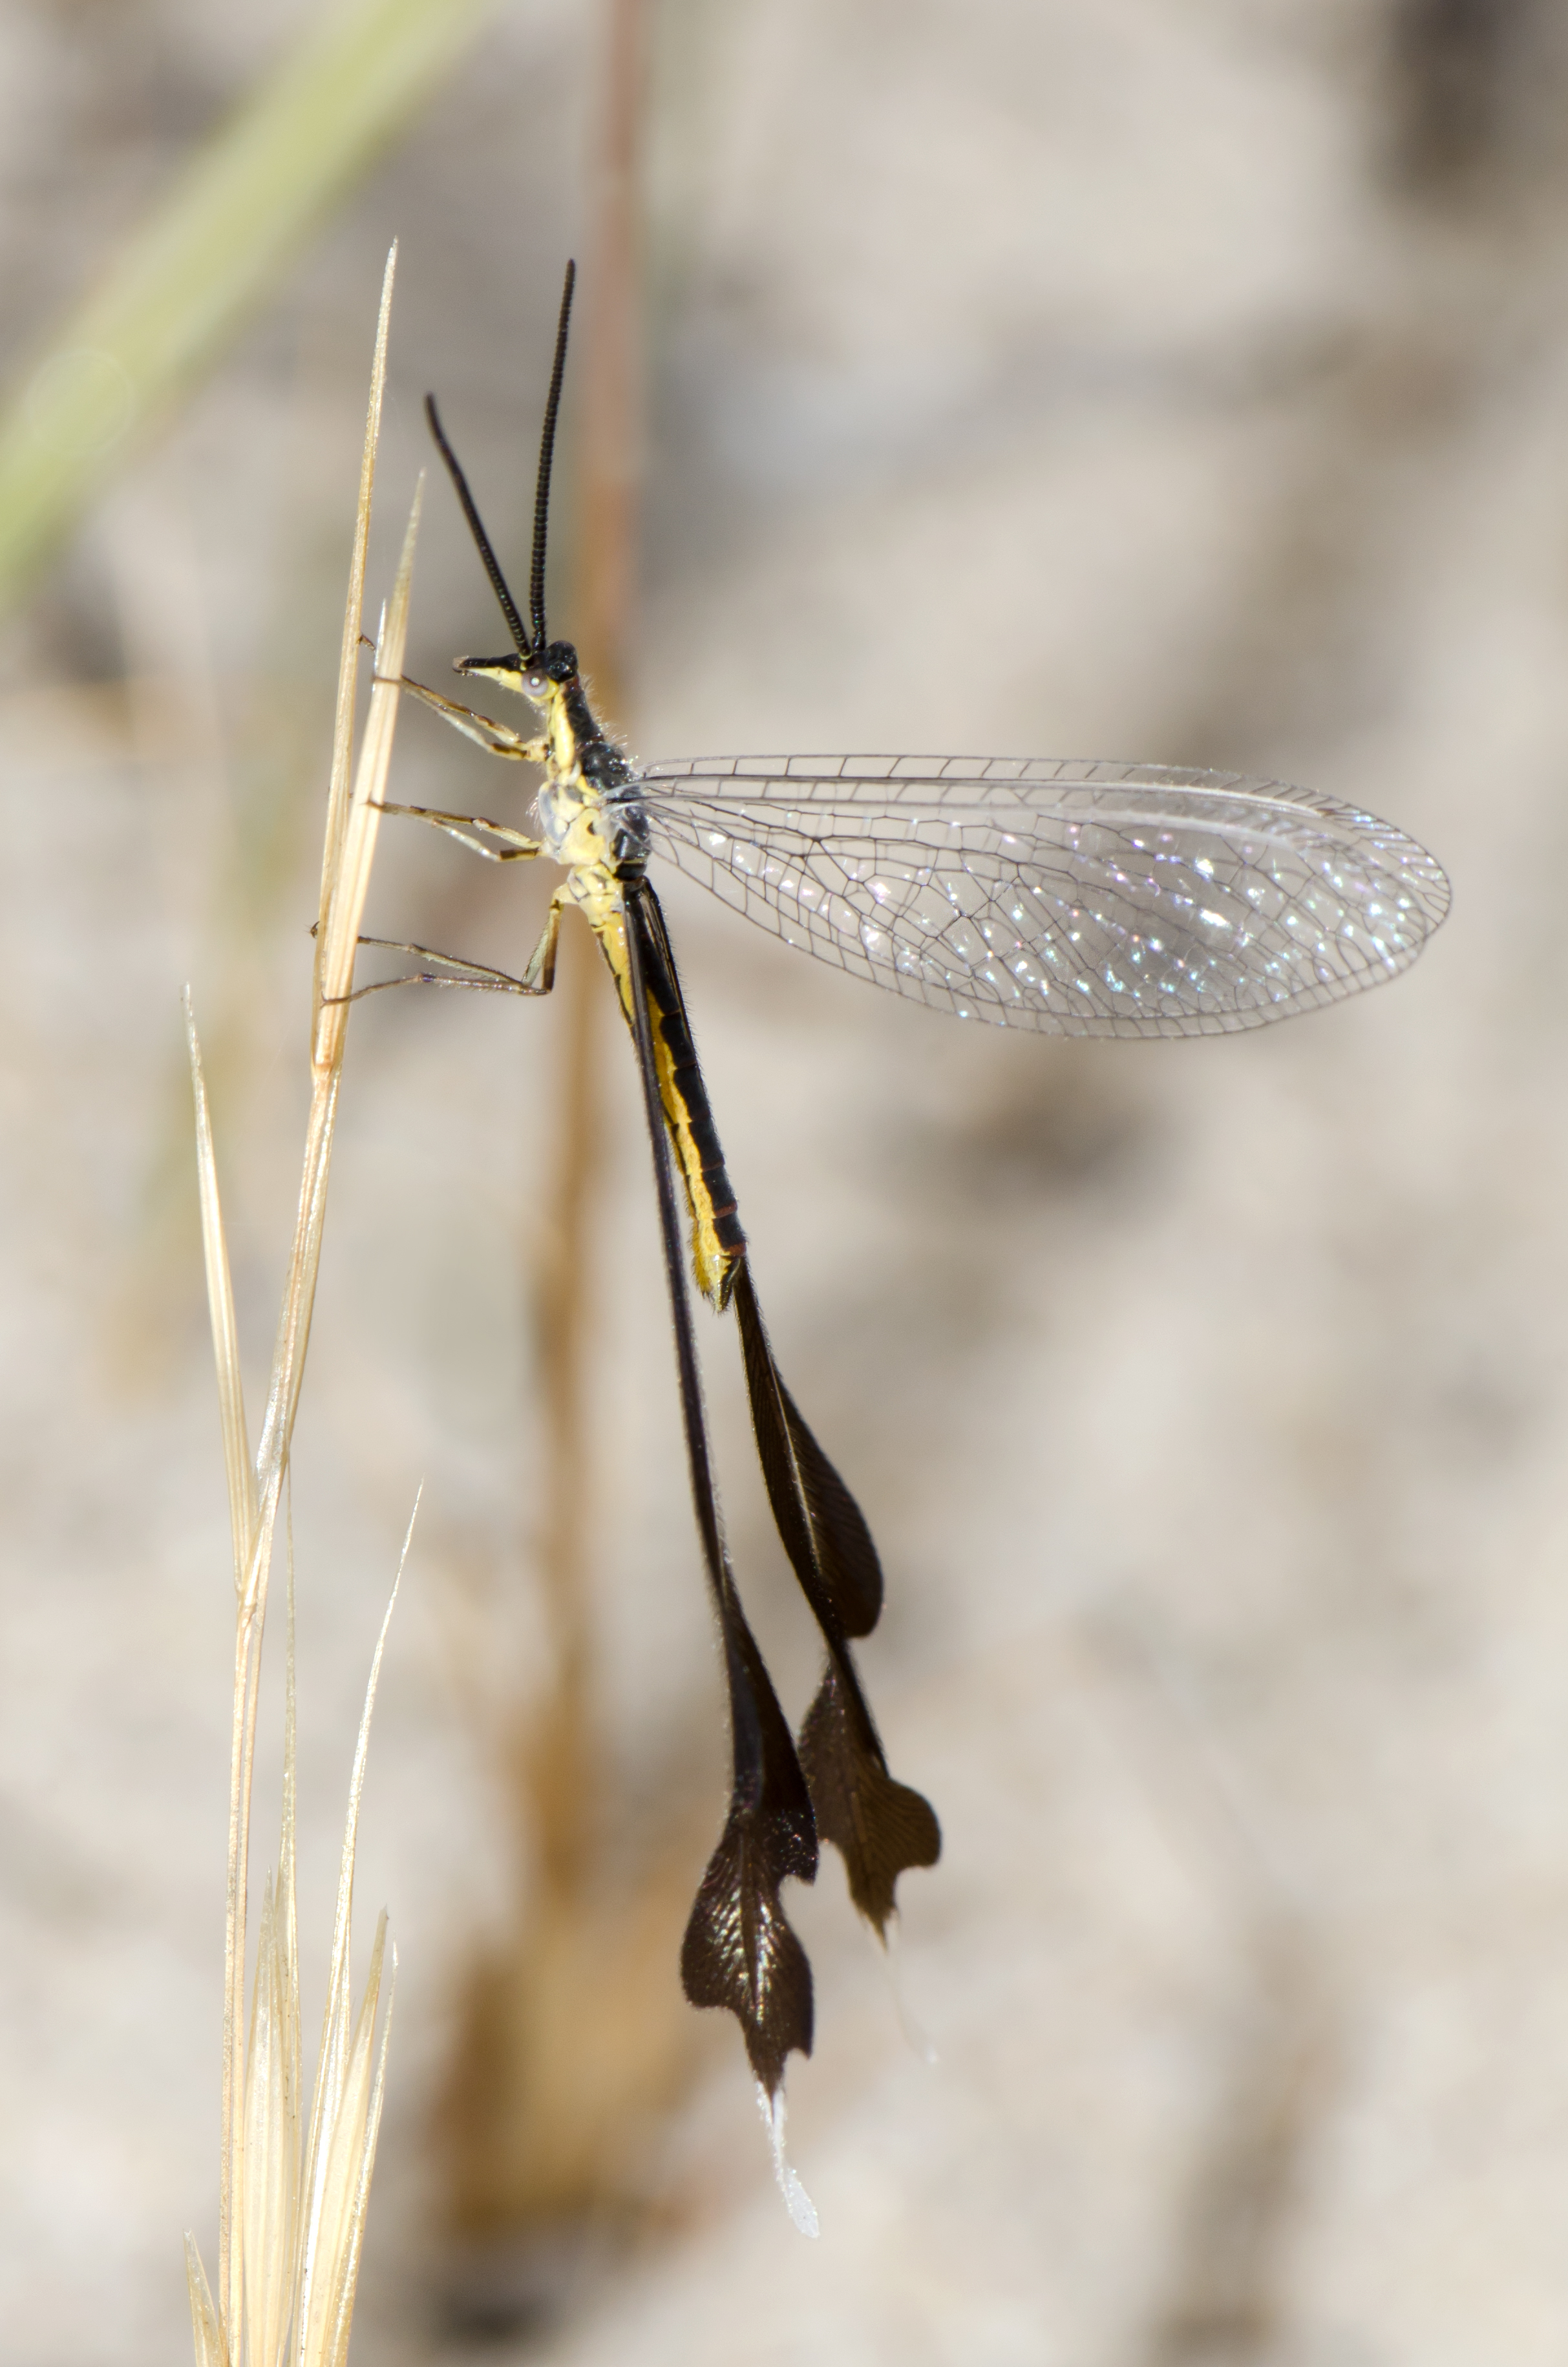 Image of Spoon-winged lacewing